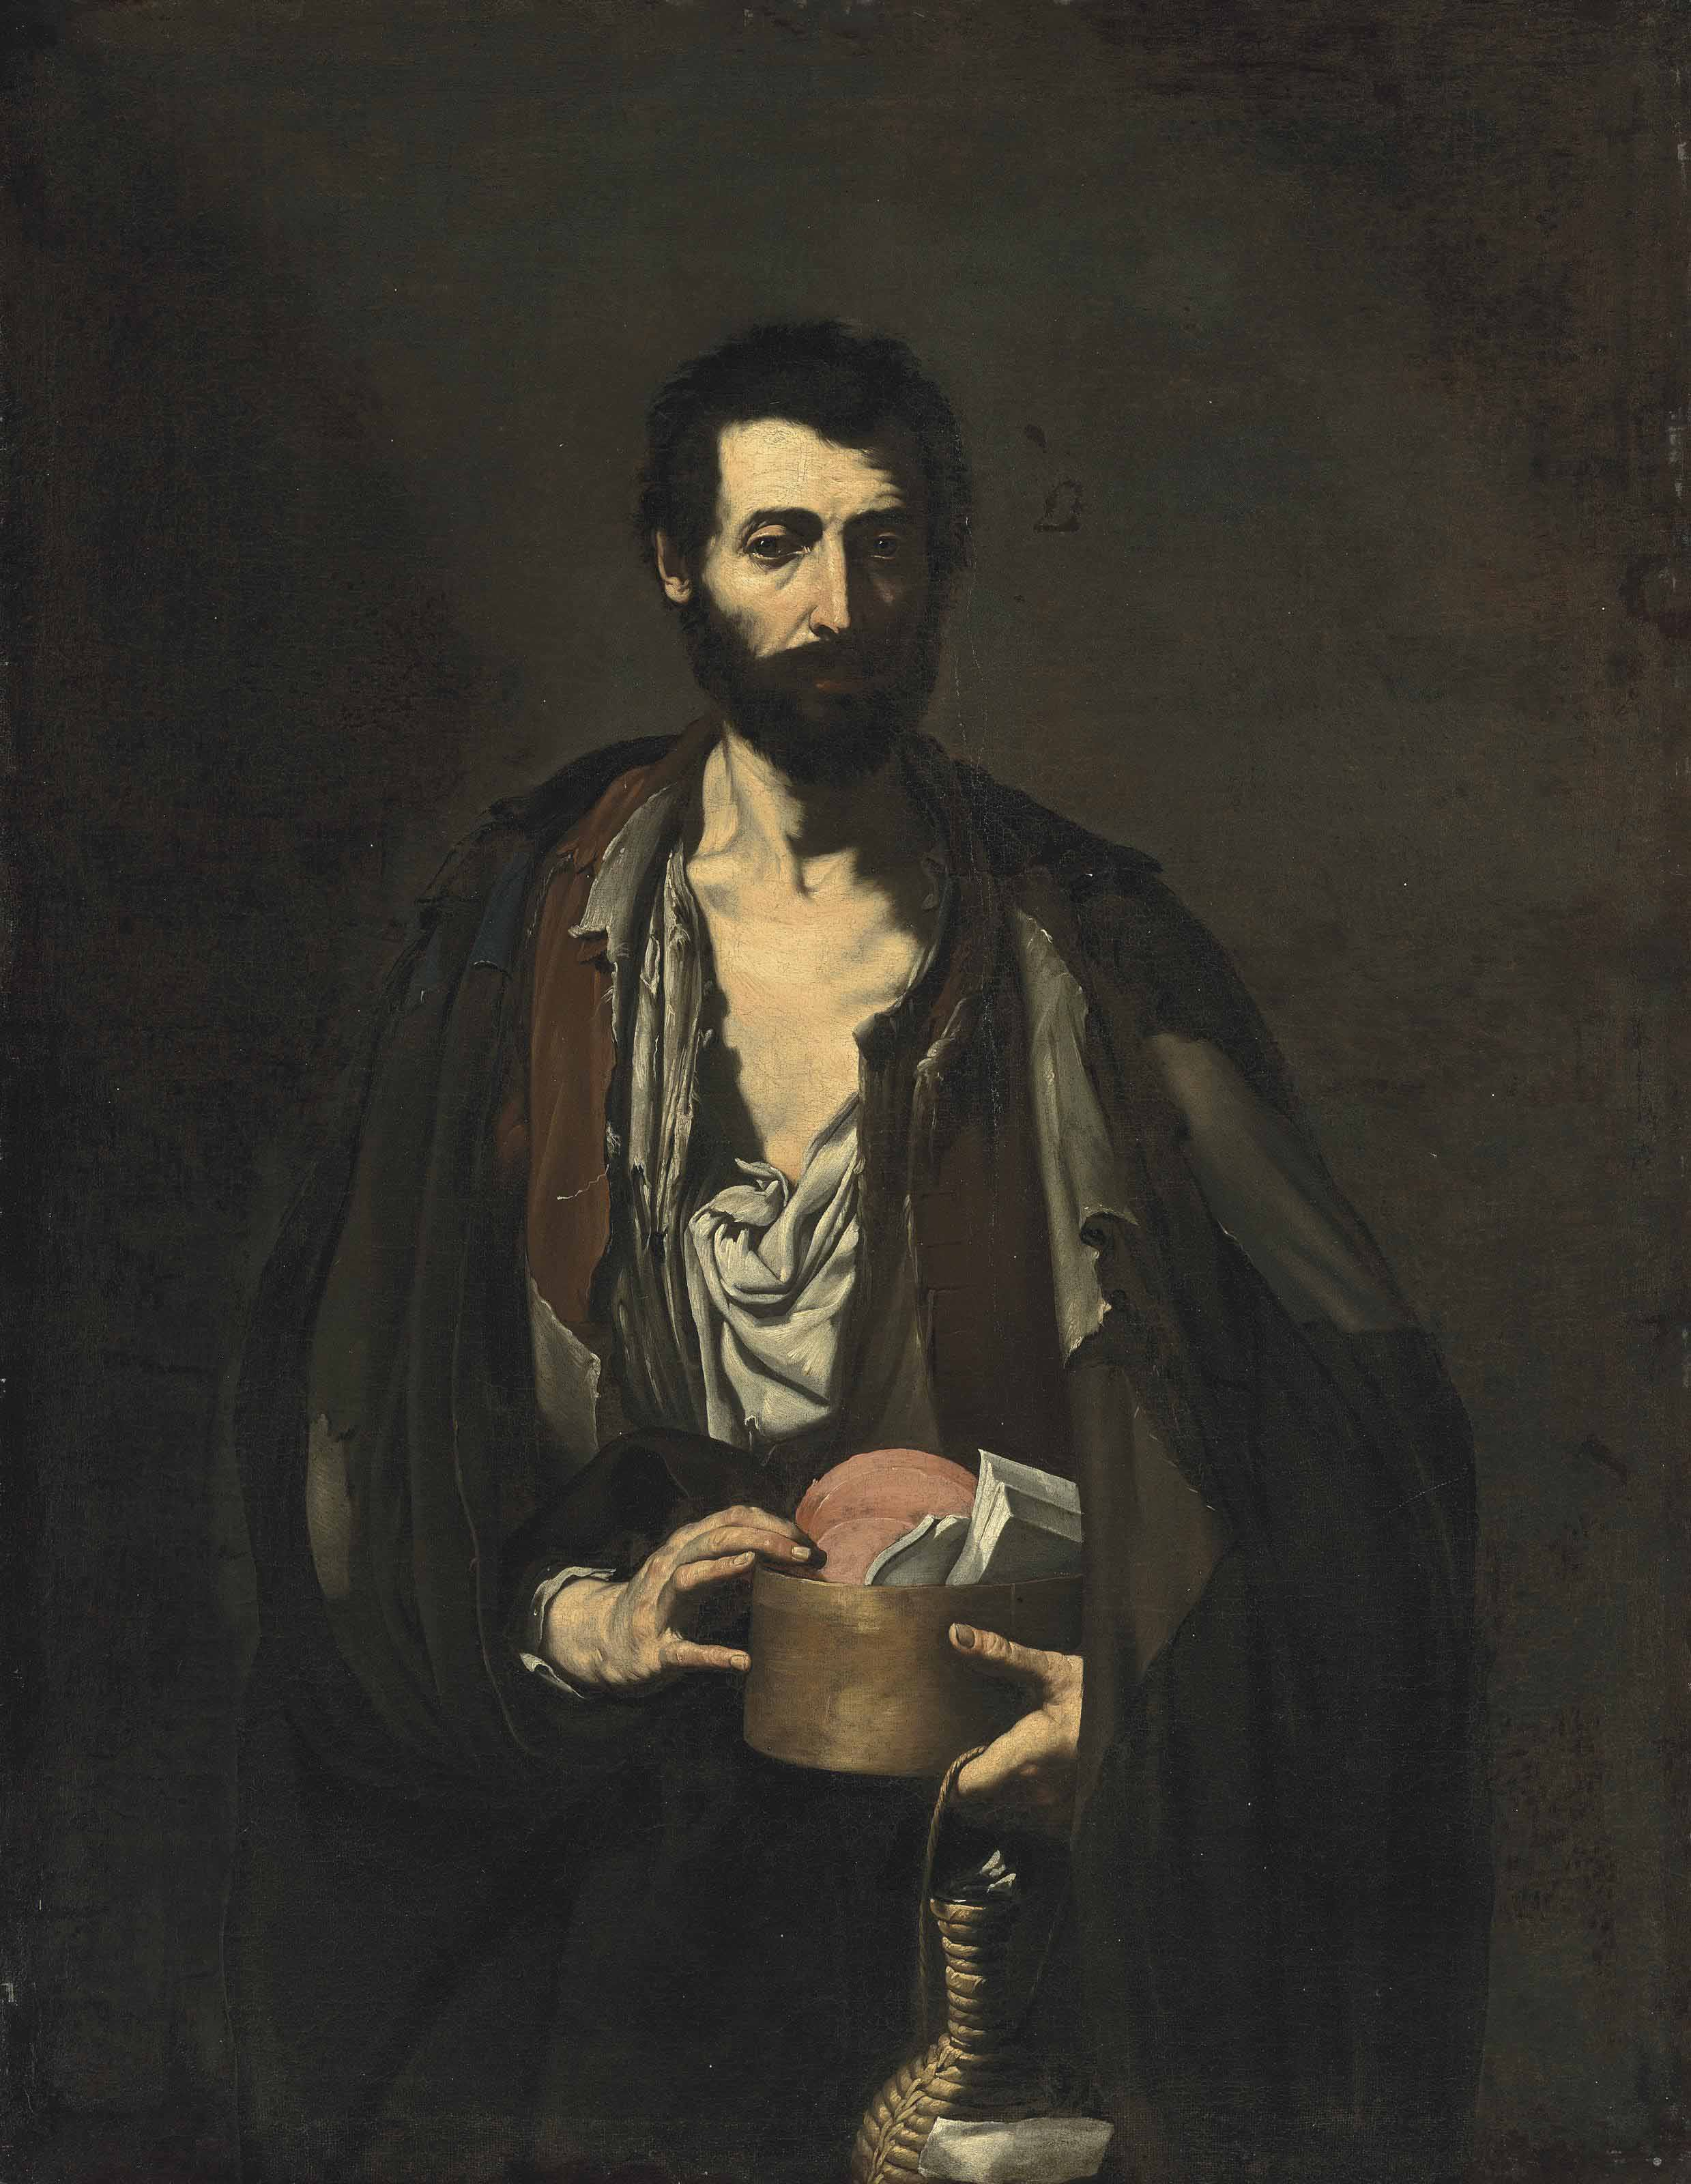 A philosopher, half-length, in a torn white shirt and brown jacket, holding books and a wicker flask